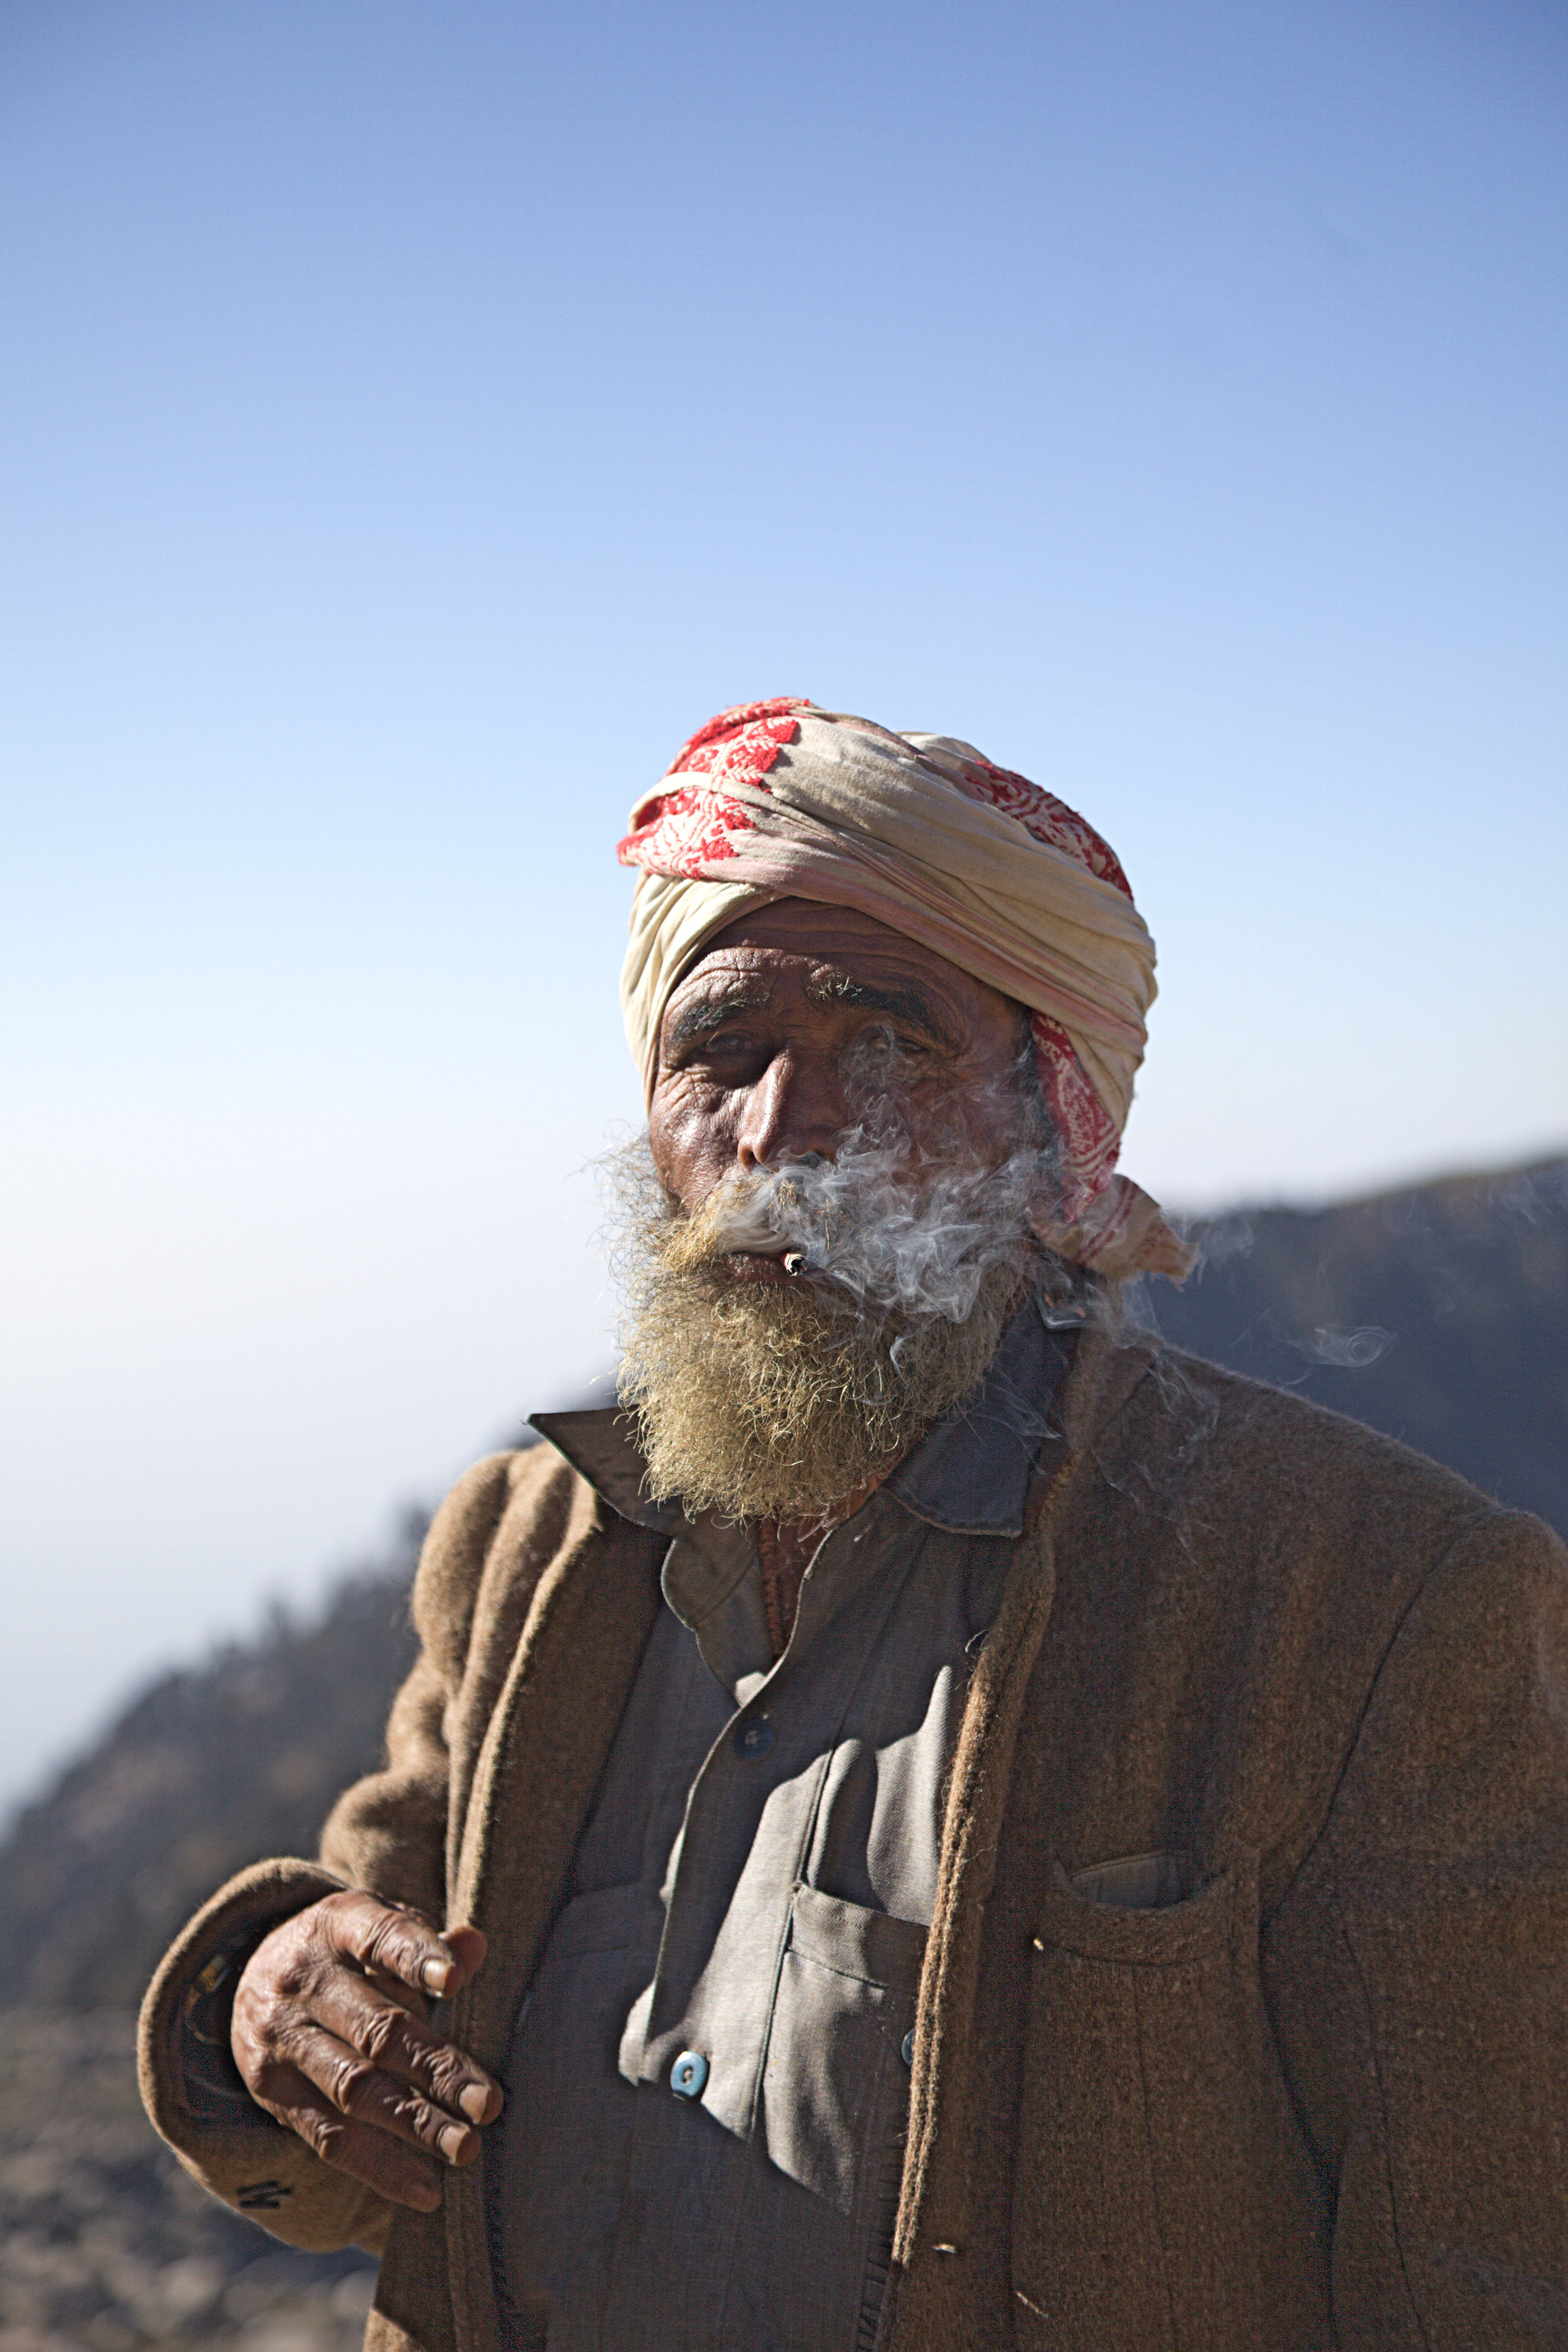 Arjun, the star of the film 'The Golden-Laden Sheep and Sacred Mountain', a film about Gaddis and their belief systems. He is a real shepherd from the district Kangra in Himachal Pradesh.